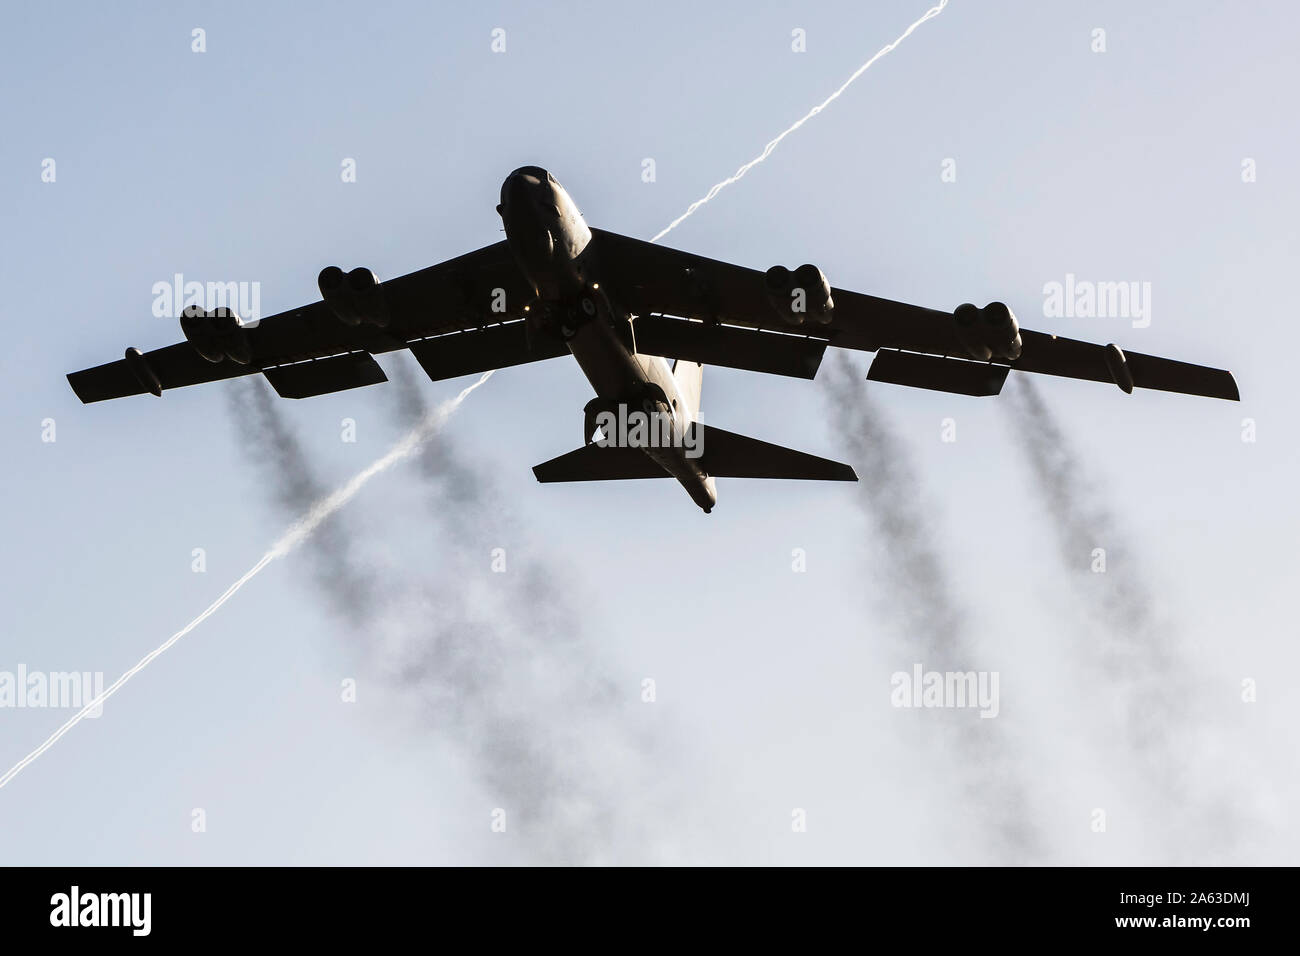 Boeing B-52 Stratofortress during deplyment at RAF Fairford Stock Photo